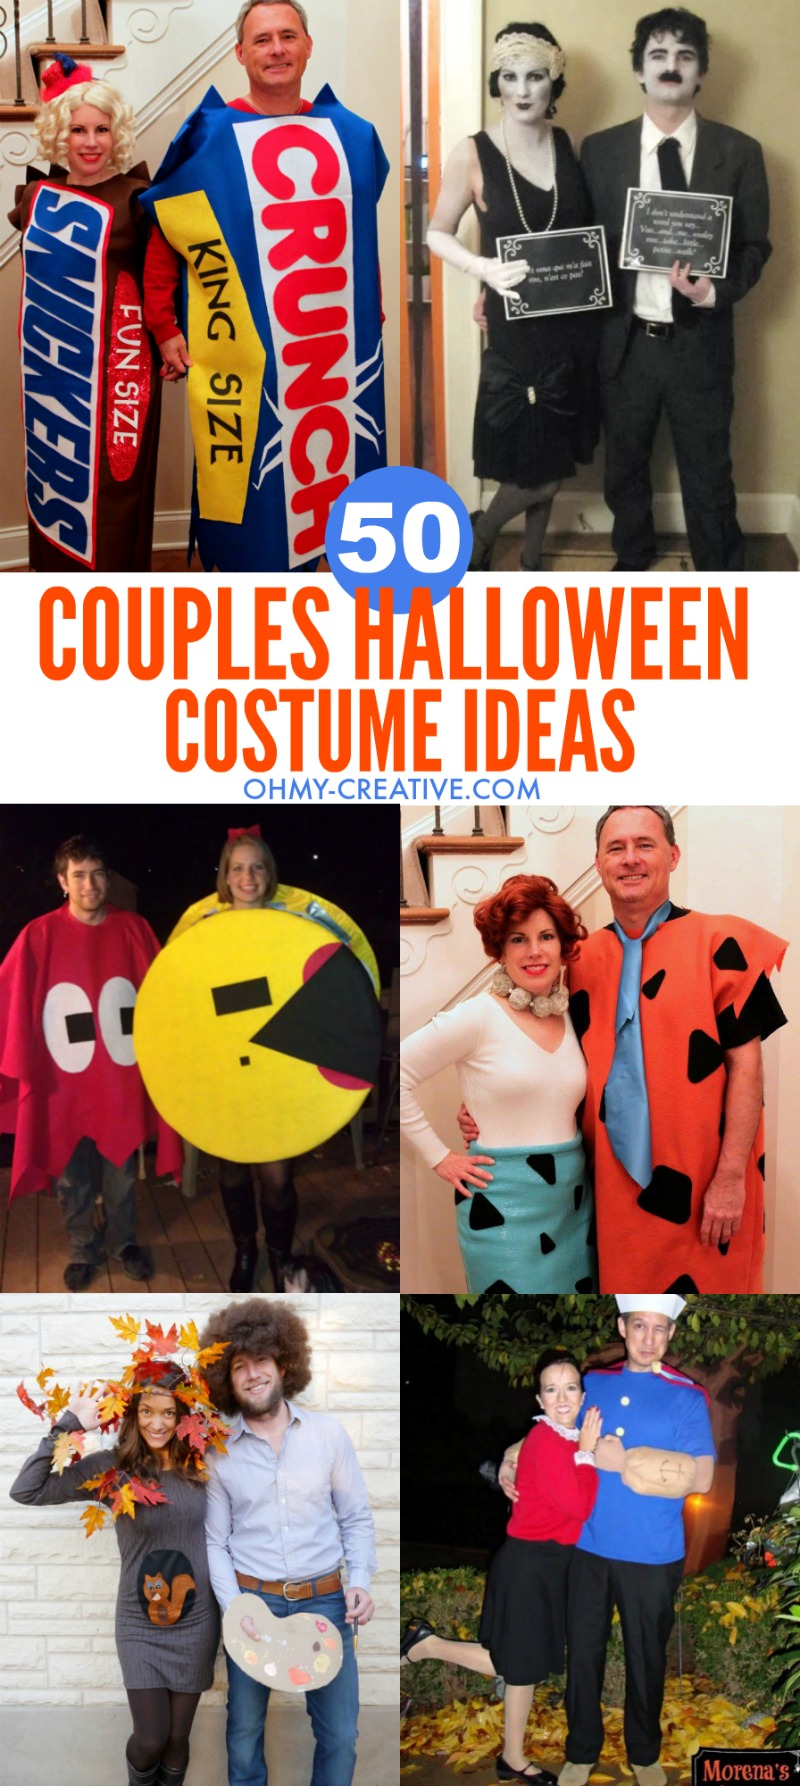 50 Couples Halloween Costume Ideas | OHMY-CREATIVE.COM | Halloween Costumes for Couples  sc 1 st  Oh My Creative & 50 Couples Halloween Costume Ideas - Oh My Creative